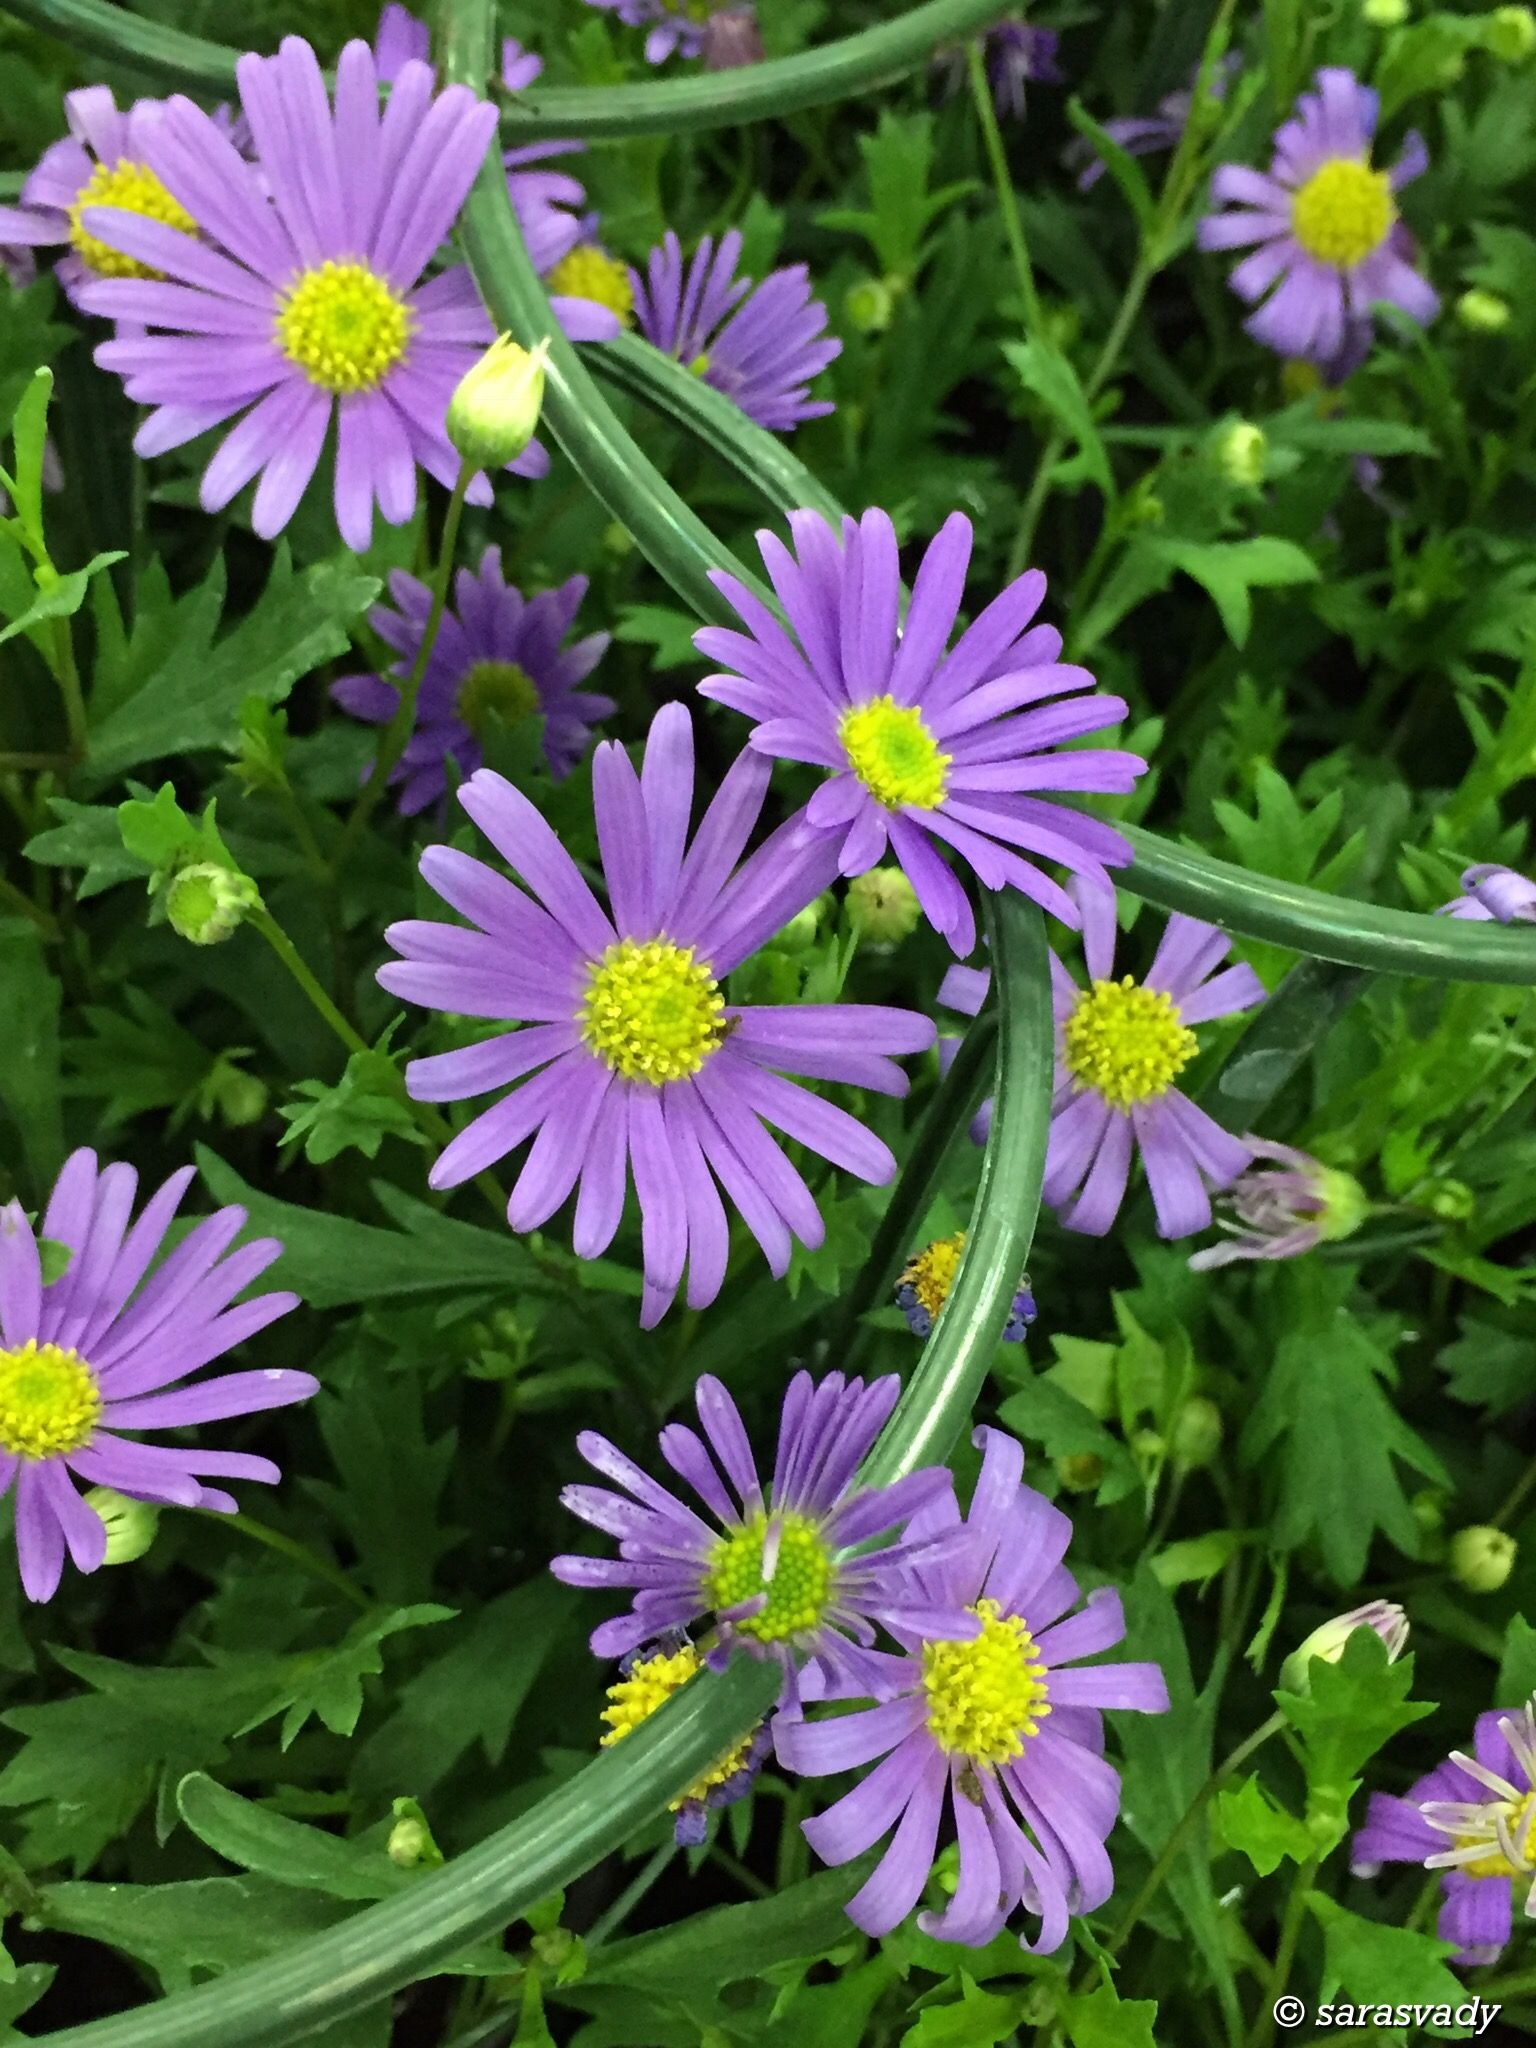 Pin By Sarasvady Rattinavelou On Asters Flowers Photography Purple Flowers Beautiful Flowers